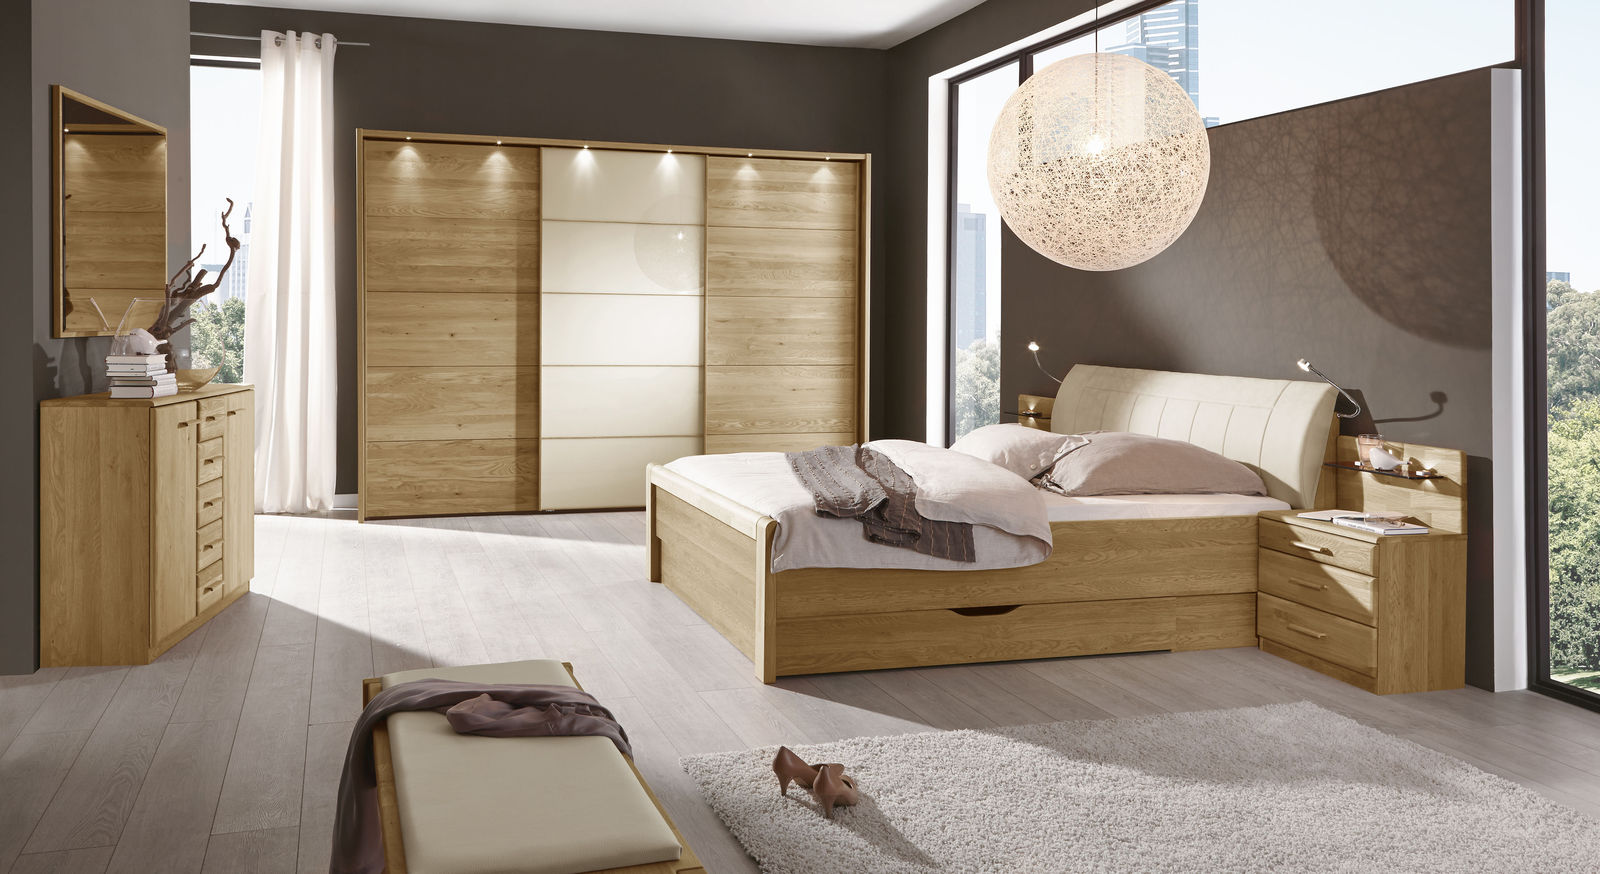 wandgestaltung schlafzimmer holz. Black Bedroom Furniture Sets. Home Design Ideas